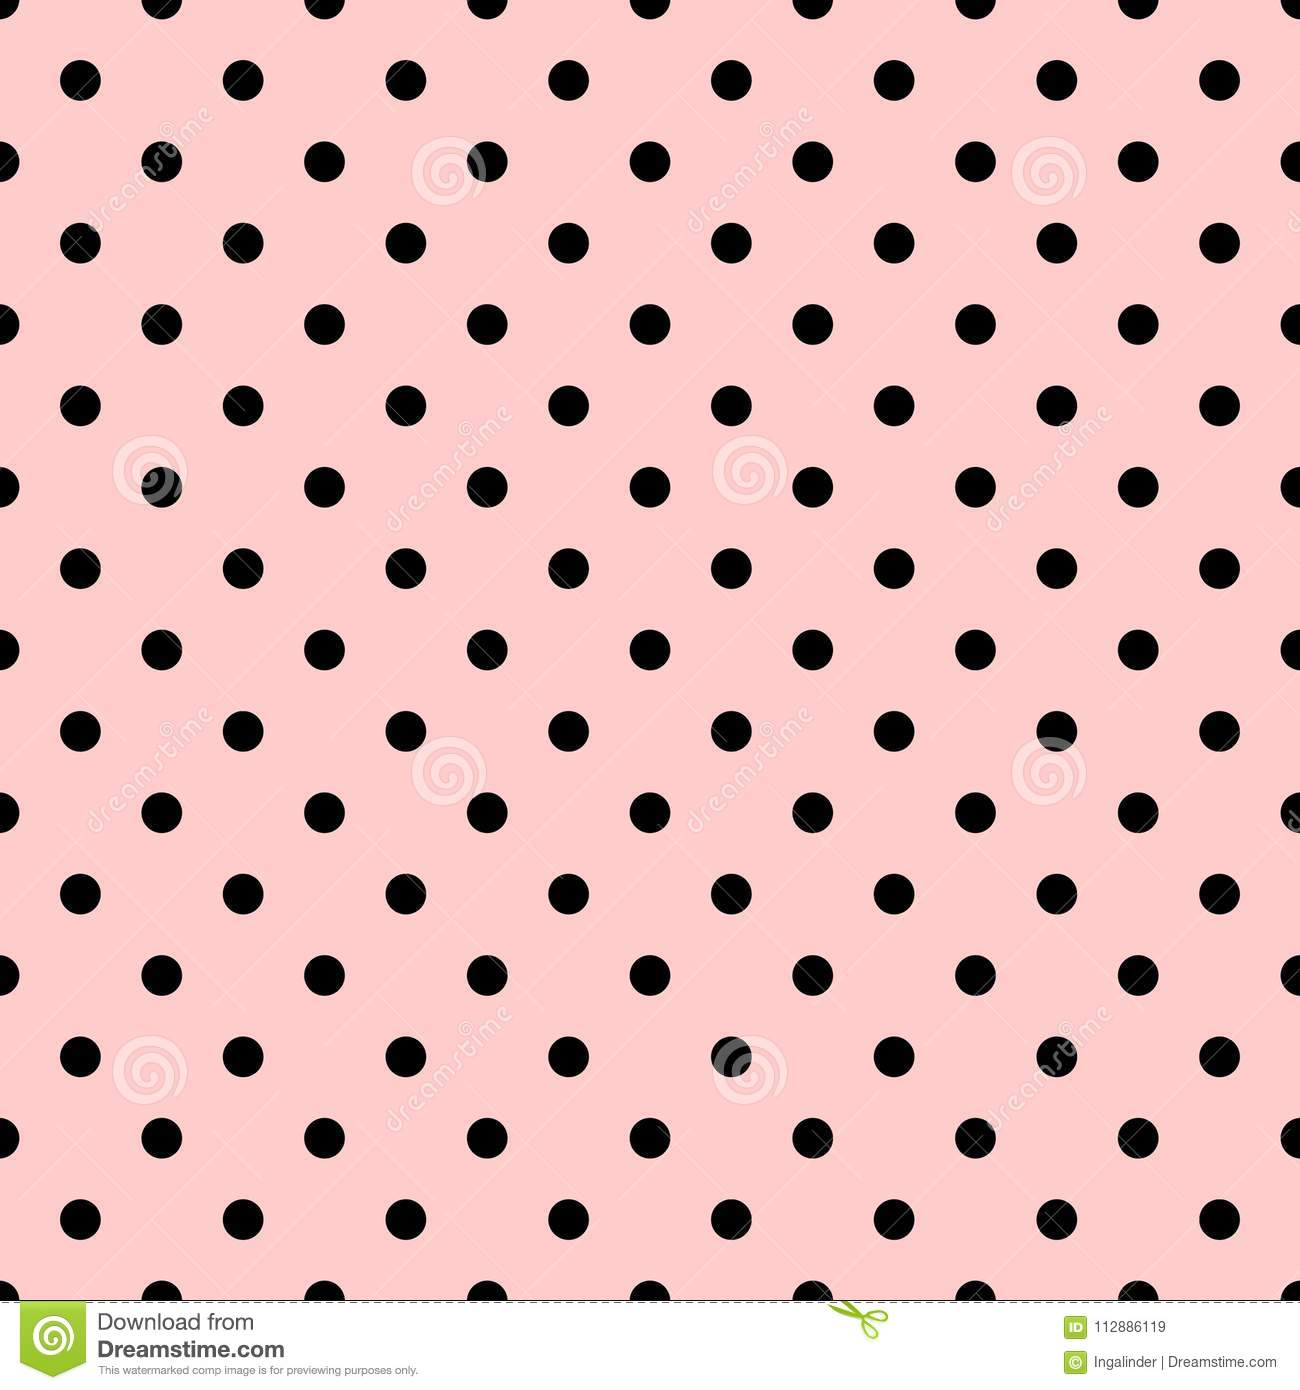 Tile Vector Pattern With Black Polka Dots On Pastel Pink